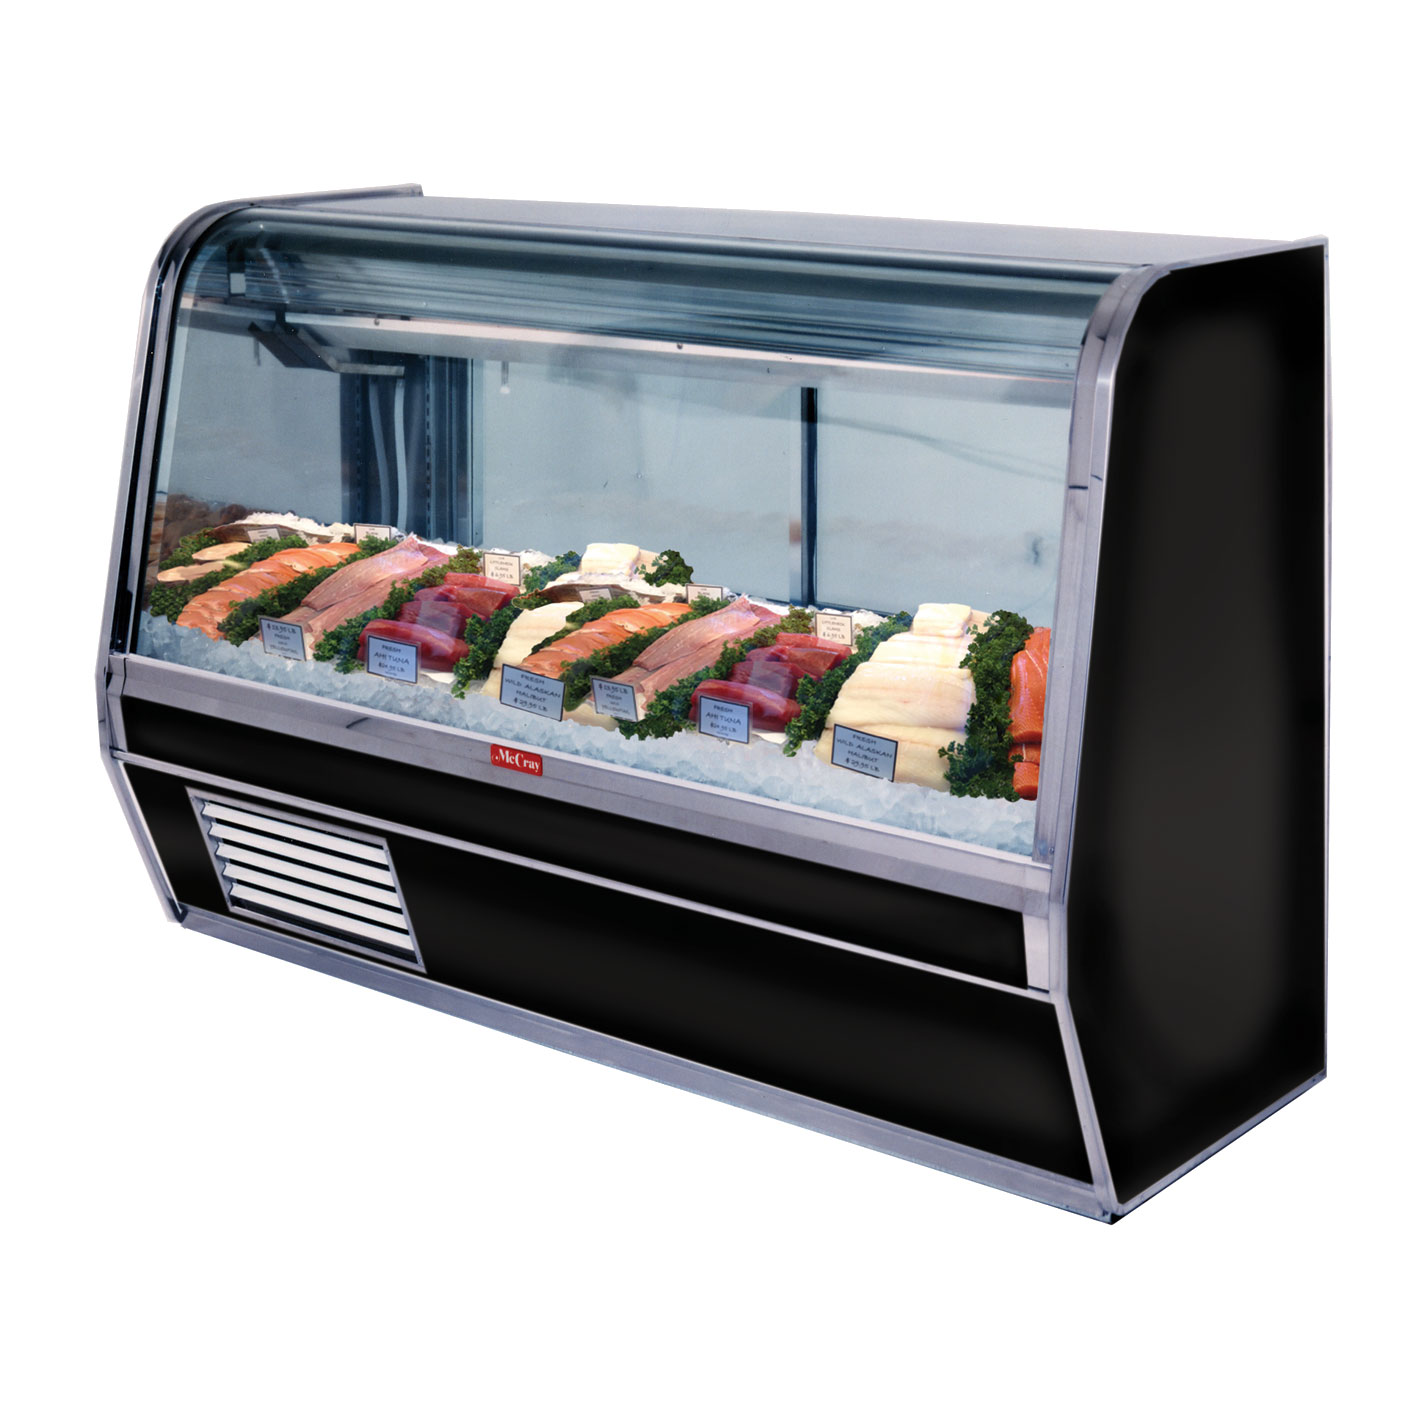 Howard-McCray R-CFS32E-4-S-LED display case, deli seafood / poultry